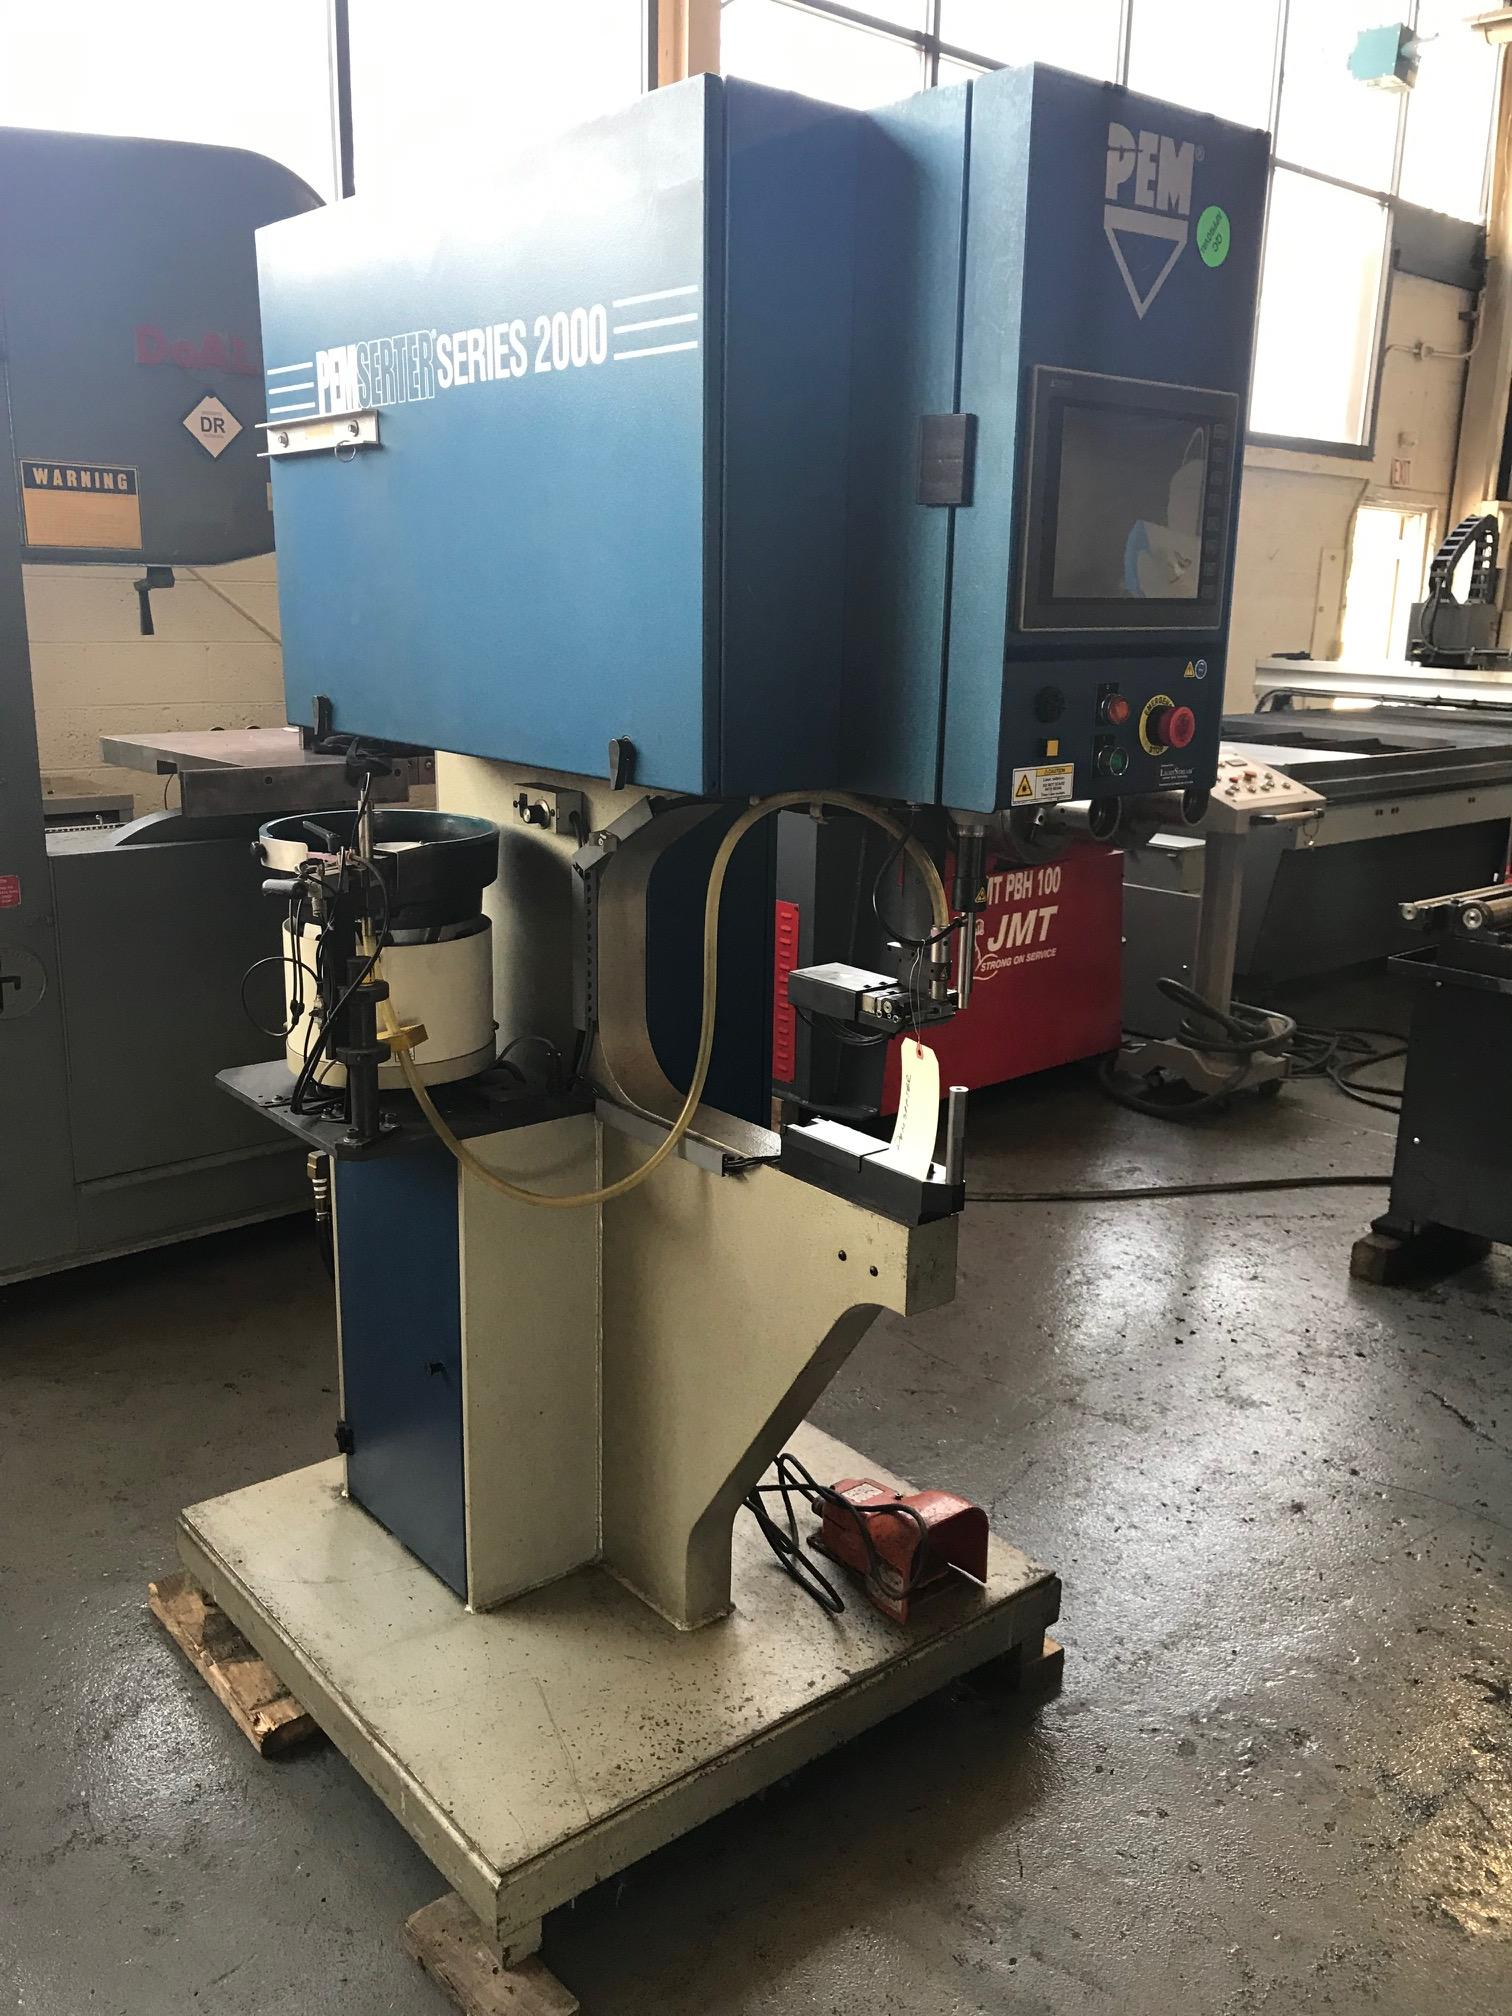 USED PEMSERTER SERIES 2000 HYDRAULIC INSERTION PRESS WITH AUTOMATIC BOWL FEEDER, STOCK# 10633, YEAR 2009